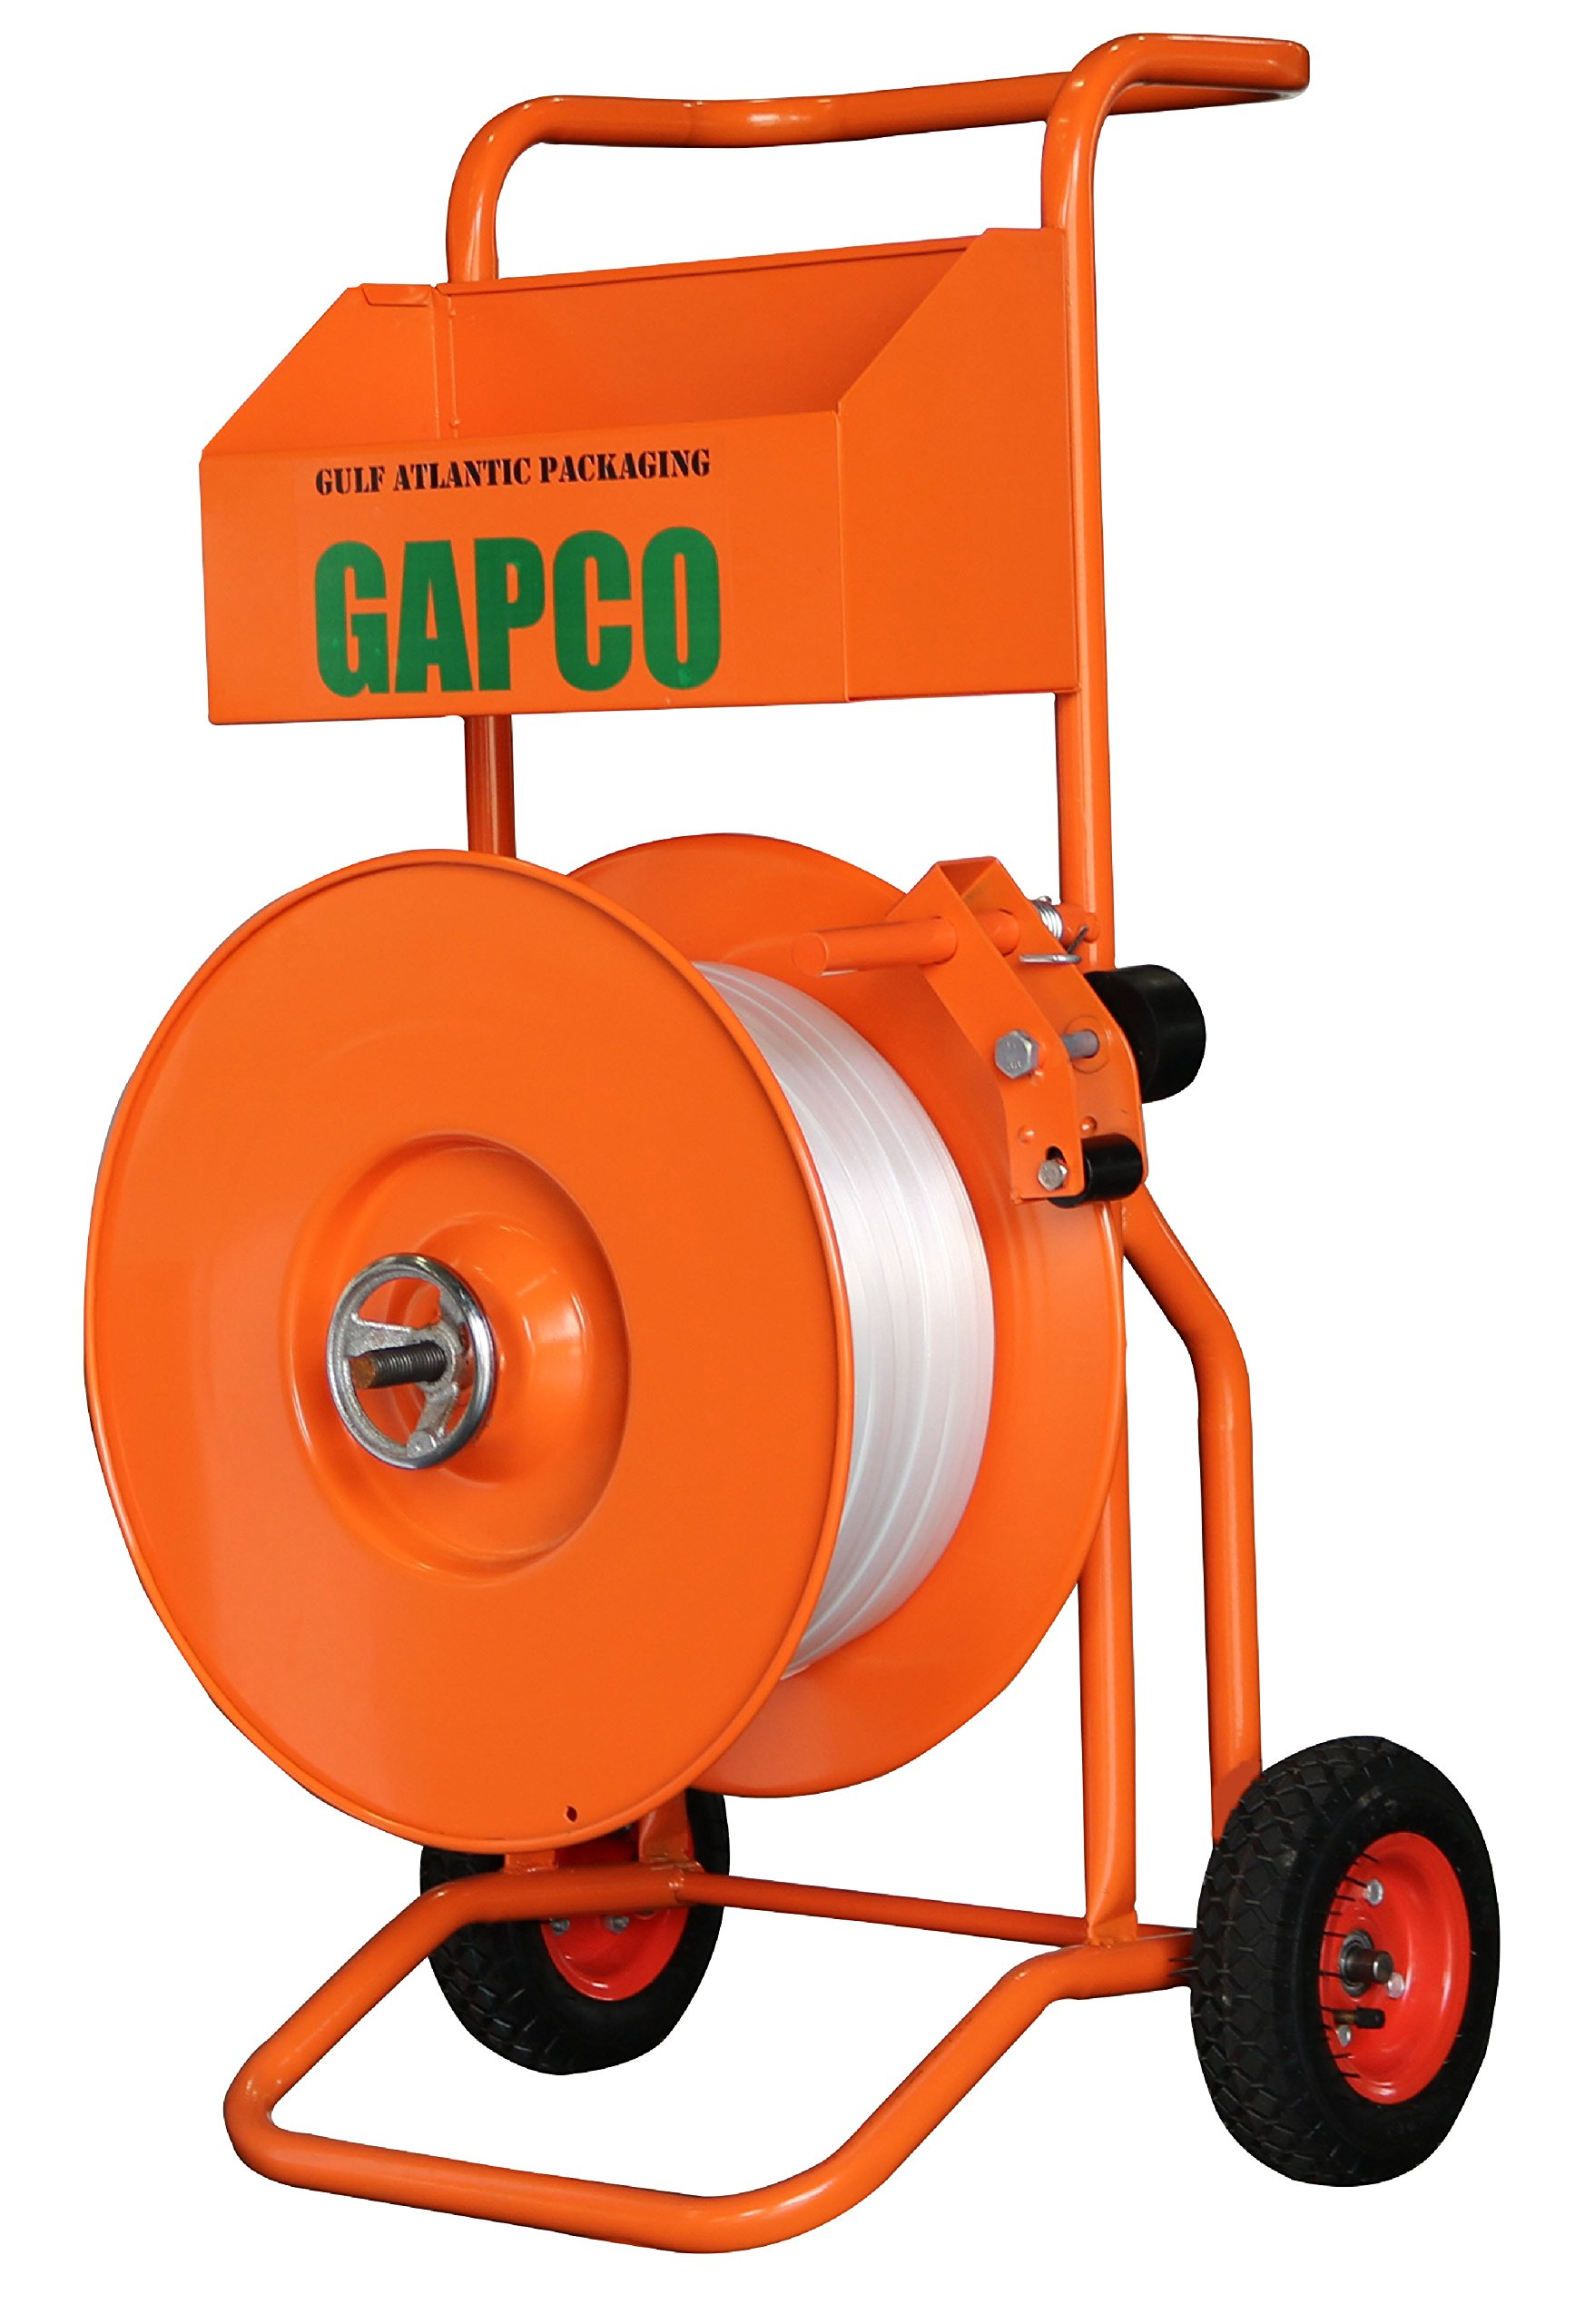 GAPCO T-75 Deluxe Heavy Duty Polyester Woven and Composite Cord Strapping Dispenser / Banding Cart